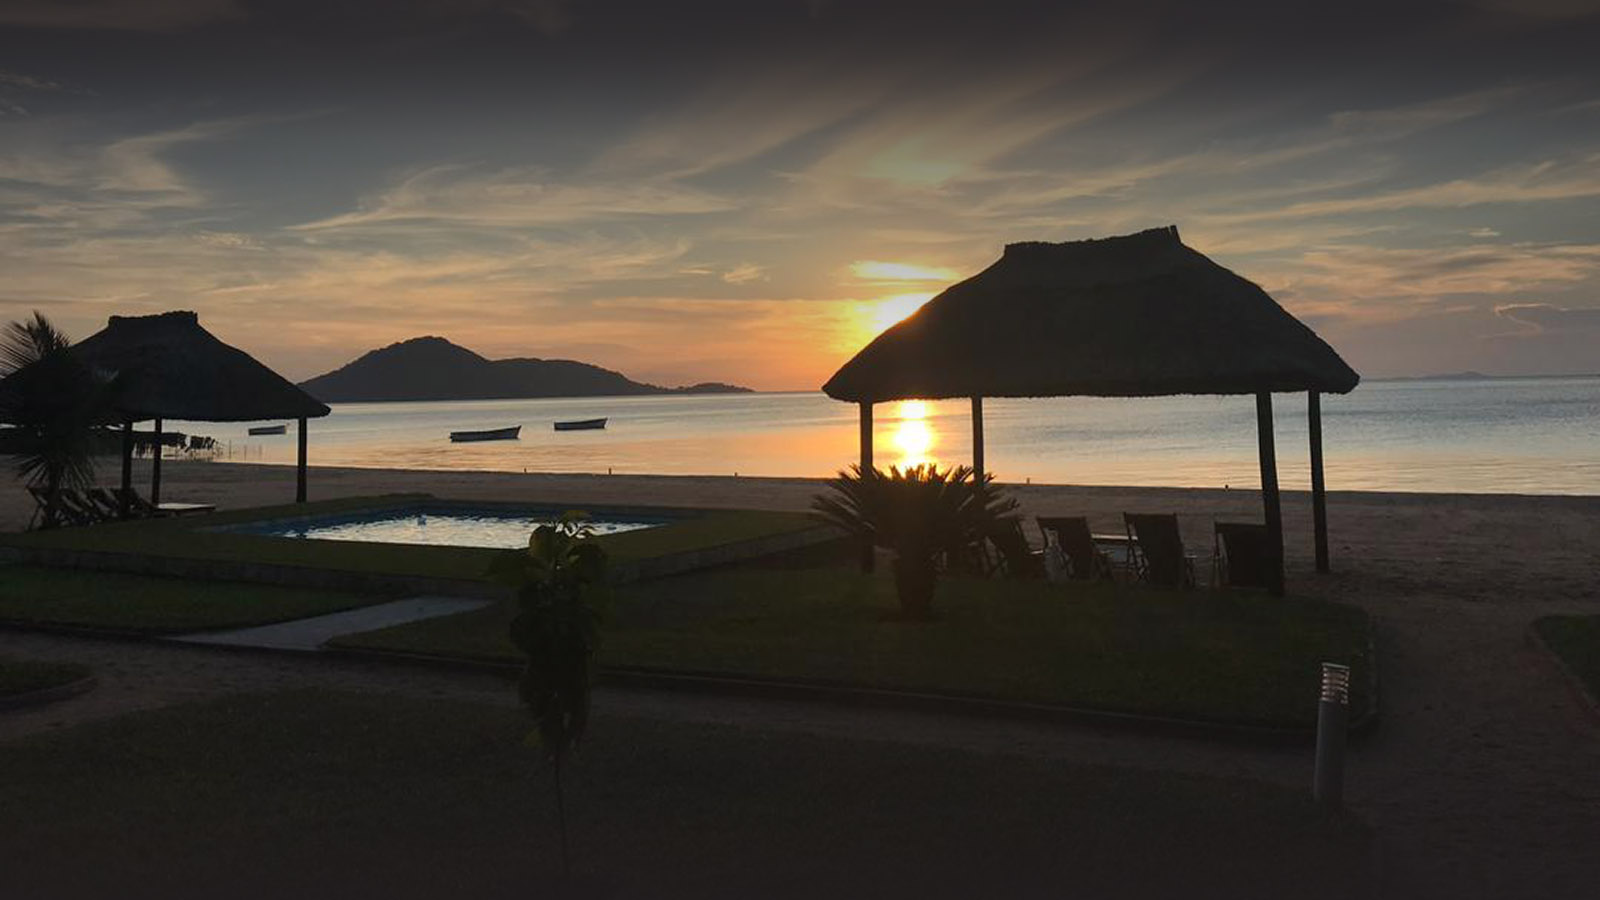 chembe eagles nest lodge-lake-malawi-lodges-malawian-style-private-beach-golden-beaches-clear-waters-accommodation-chalets-boats-views